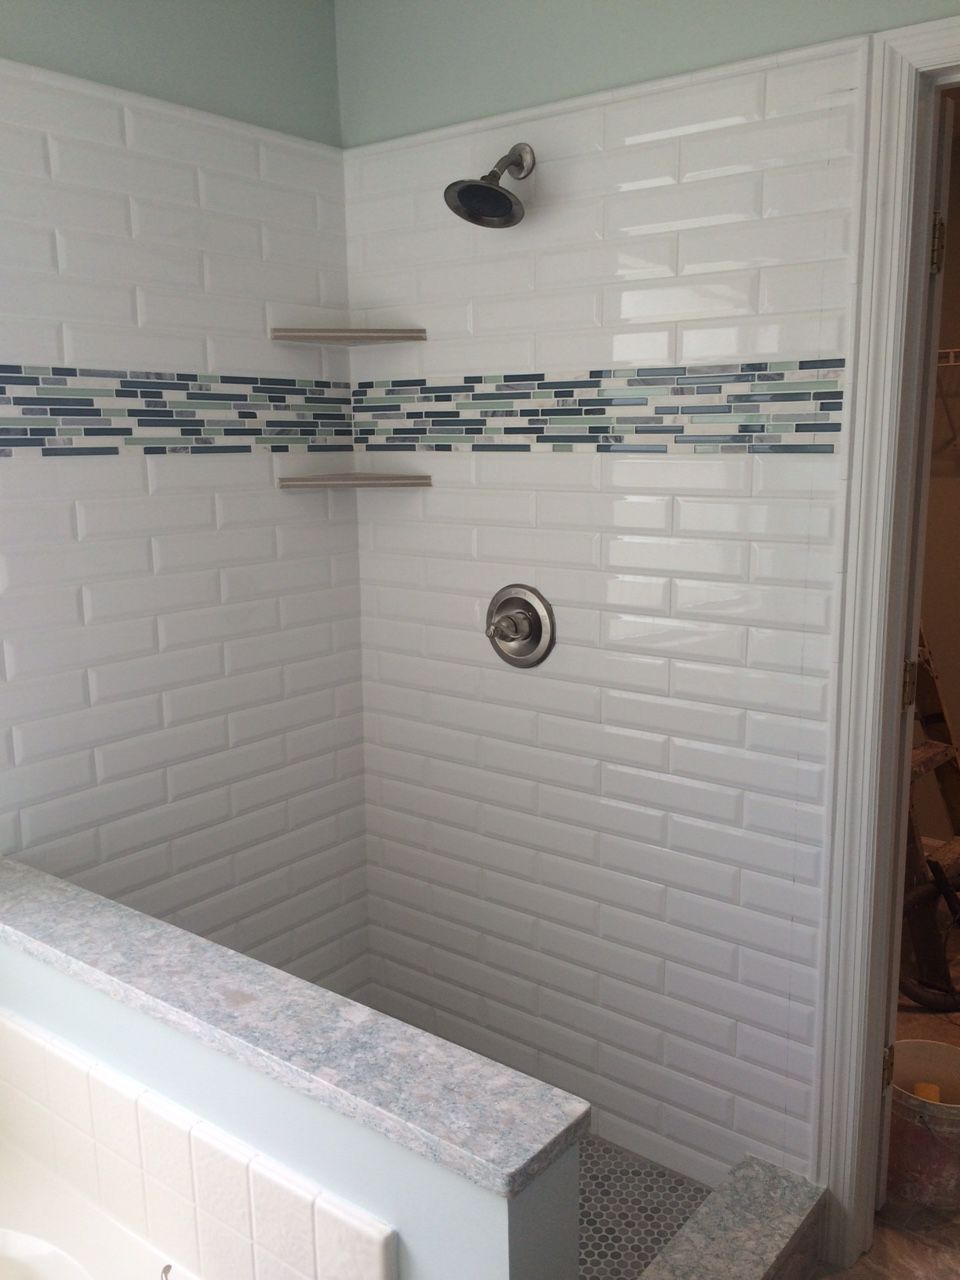 Selecting Shower Tile - Tips and Tricks | Subway tiles, White subway ...